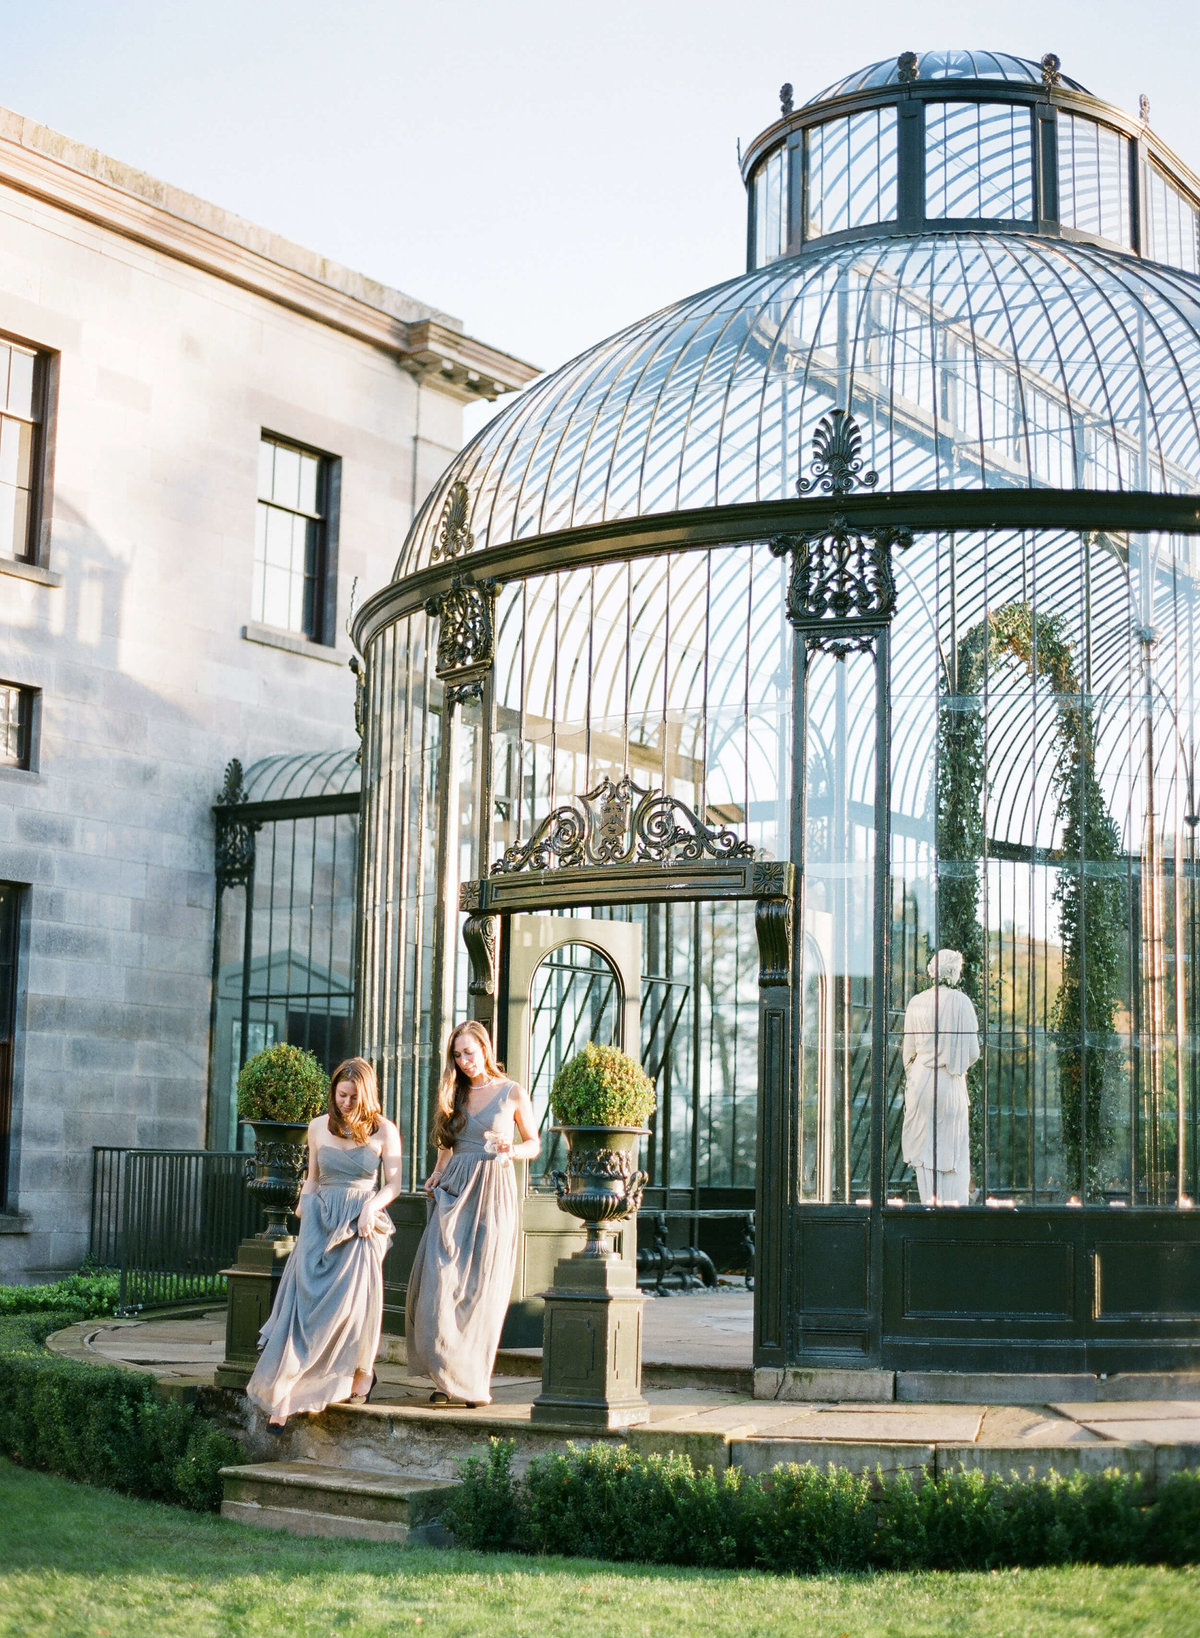 60-KTMerry-destination-weddings-bridesmaids-greenhouse-Ireland